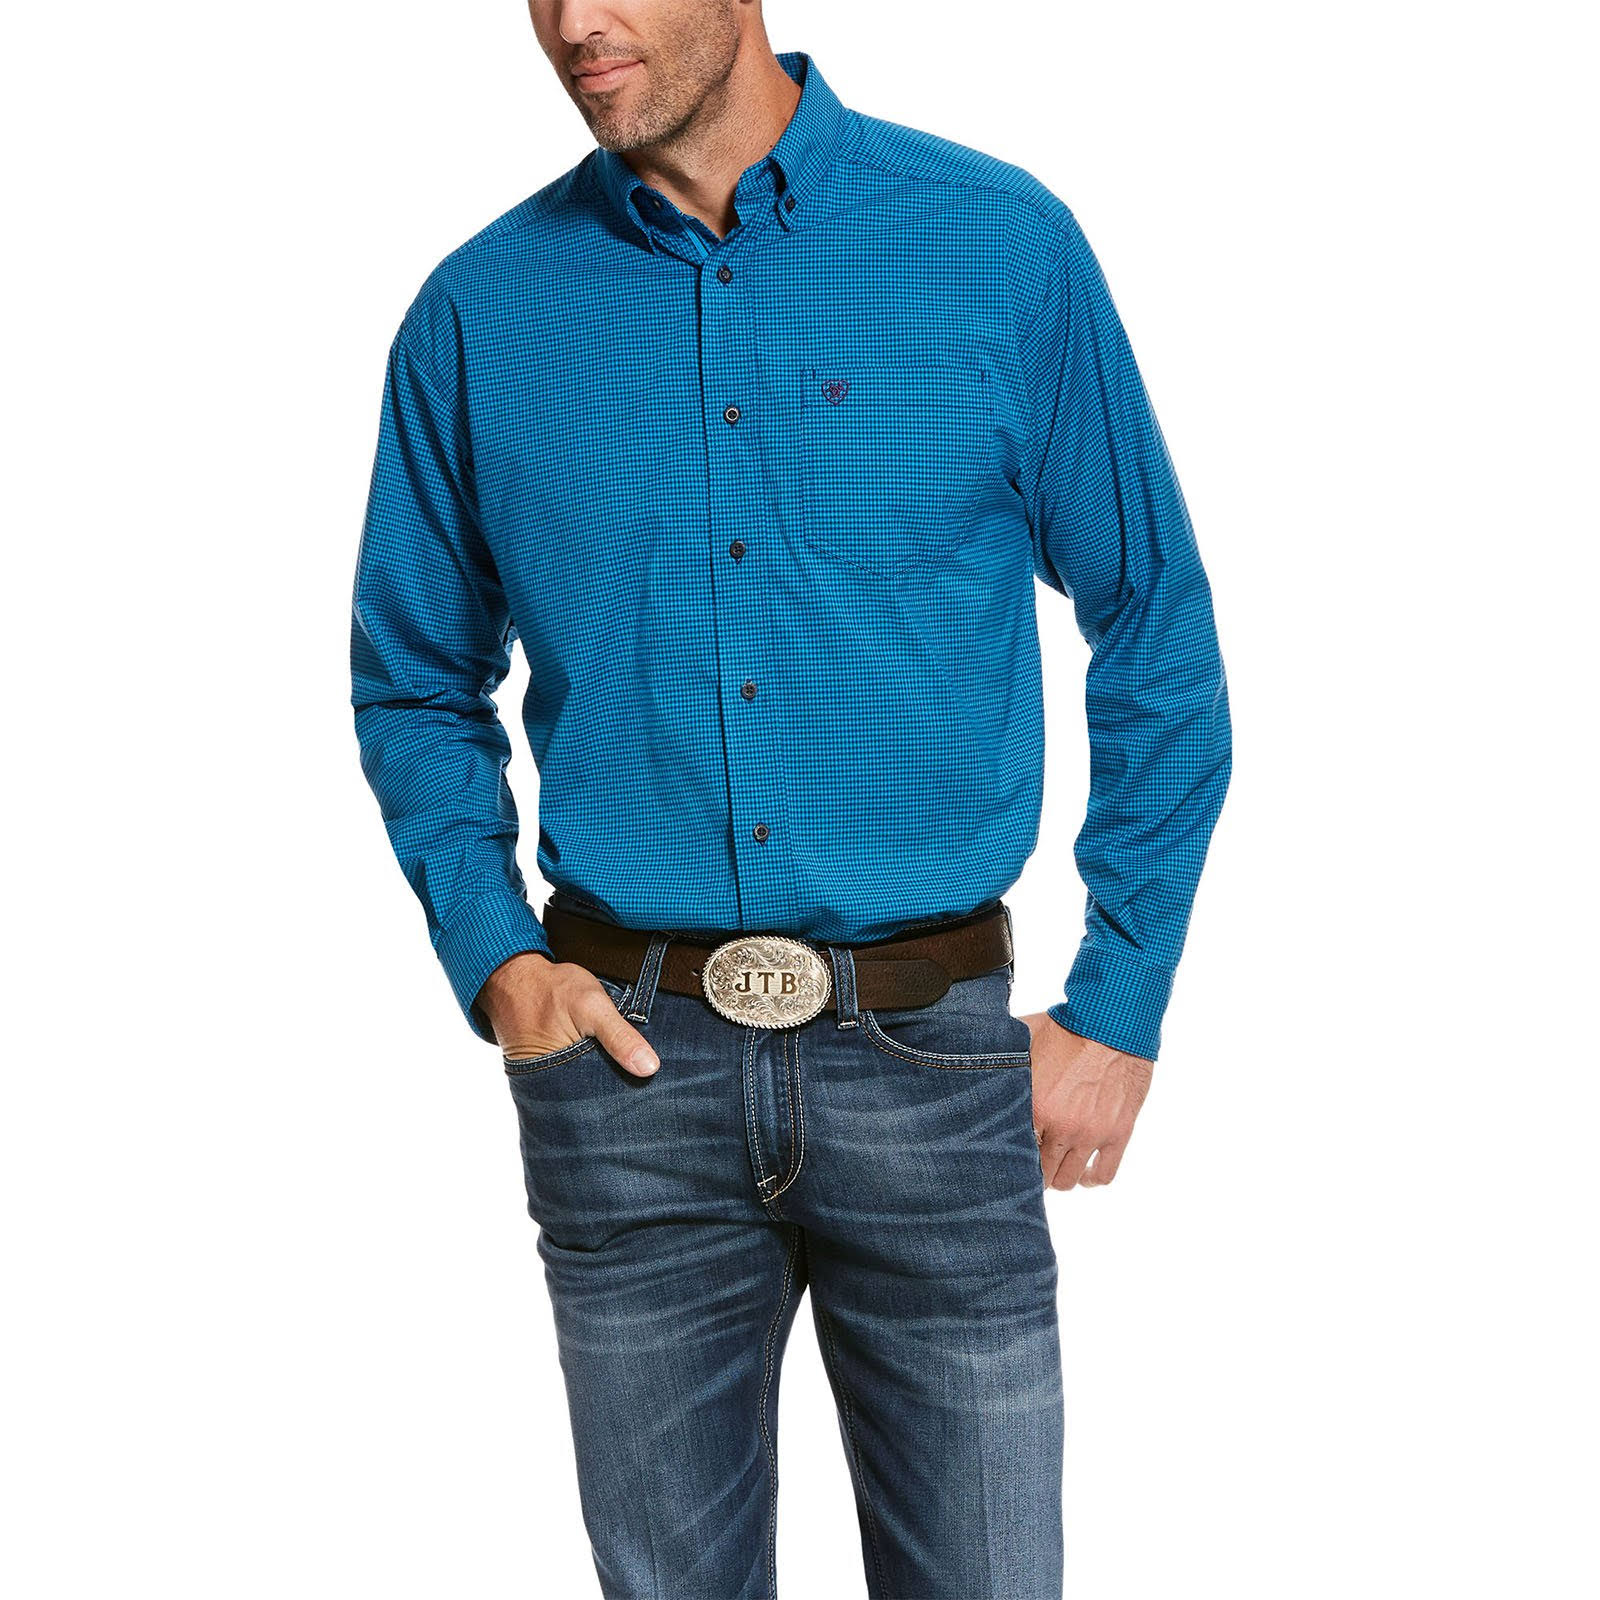 Ariat Pro Series Stetson Stretch Shirt